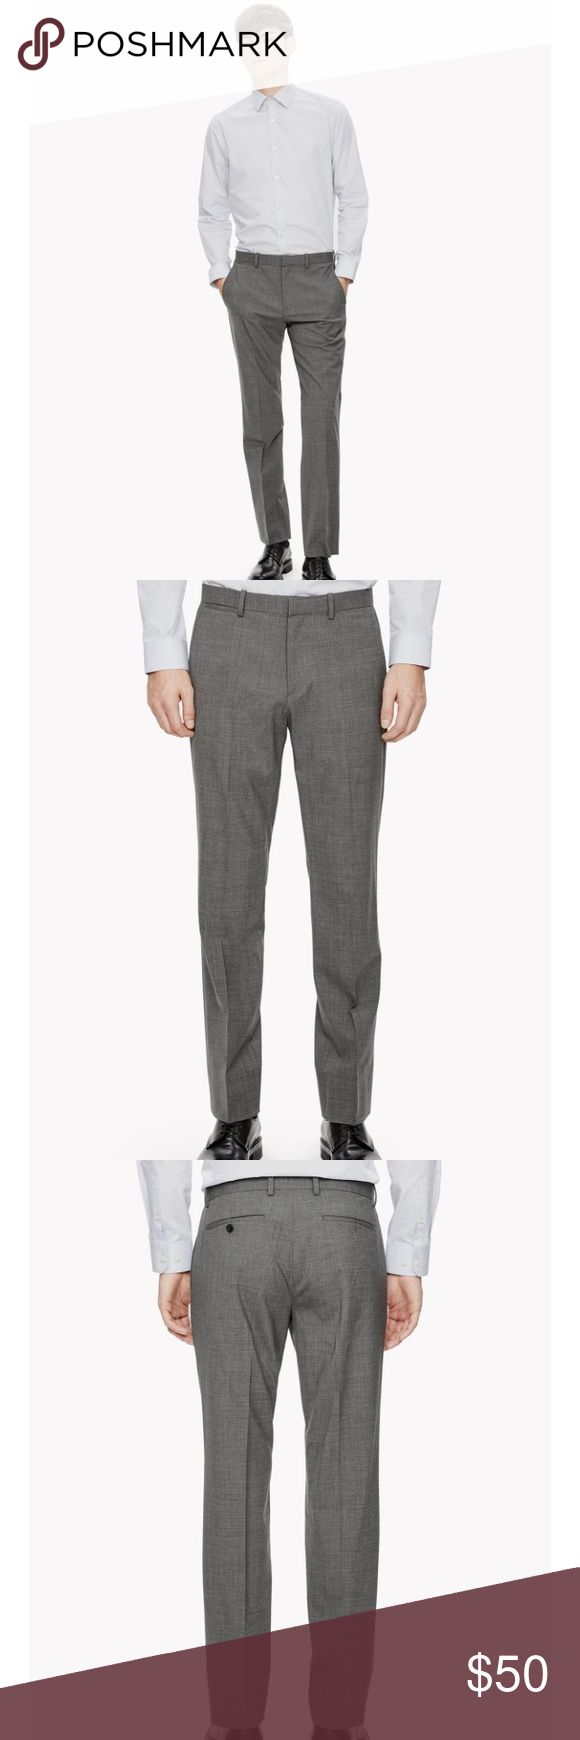 NWT Theory men's Marlo wool grey dress pants Theory Marlo Classic tailored trouser with a comfortable straight leg. Flat front. Belt loops. Front hook and zip fly. Angled front pockets. Welted back pockets. Made of signature stretch wool from Italy. Light, luxurious and resistant to creases. Wear it with or without our matching jacket. Sample tags attached. Great pants! Theory Pants Dress